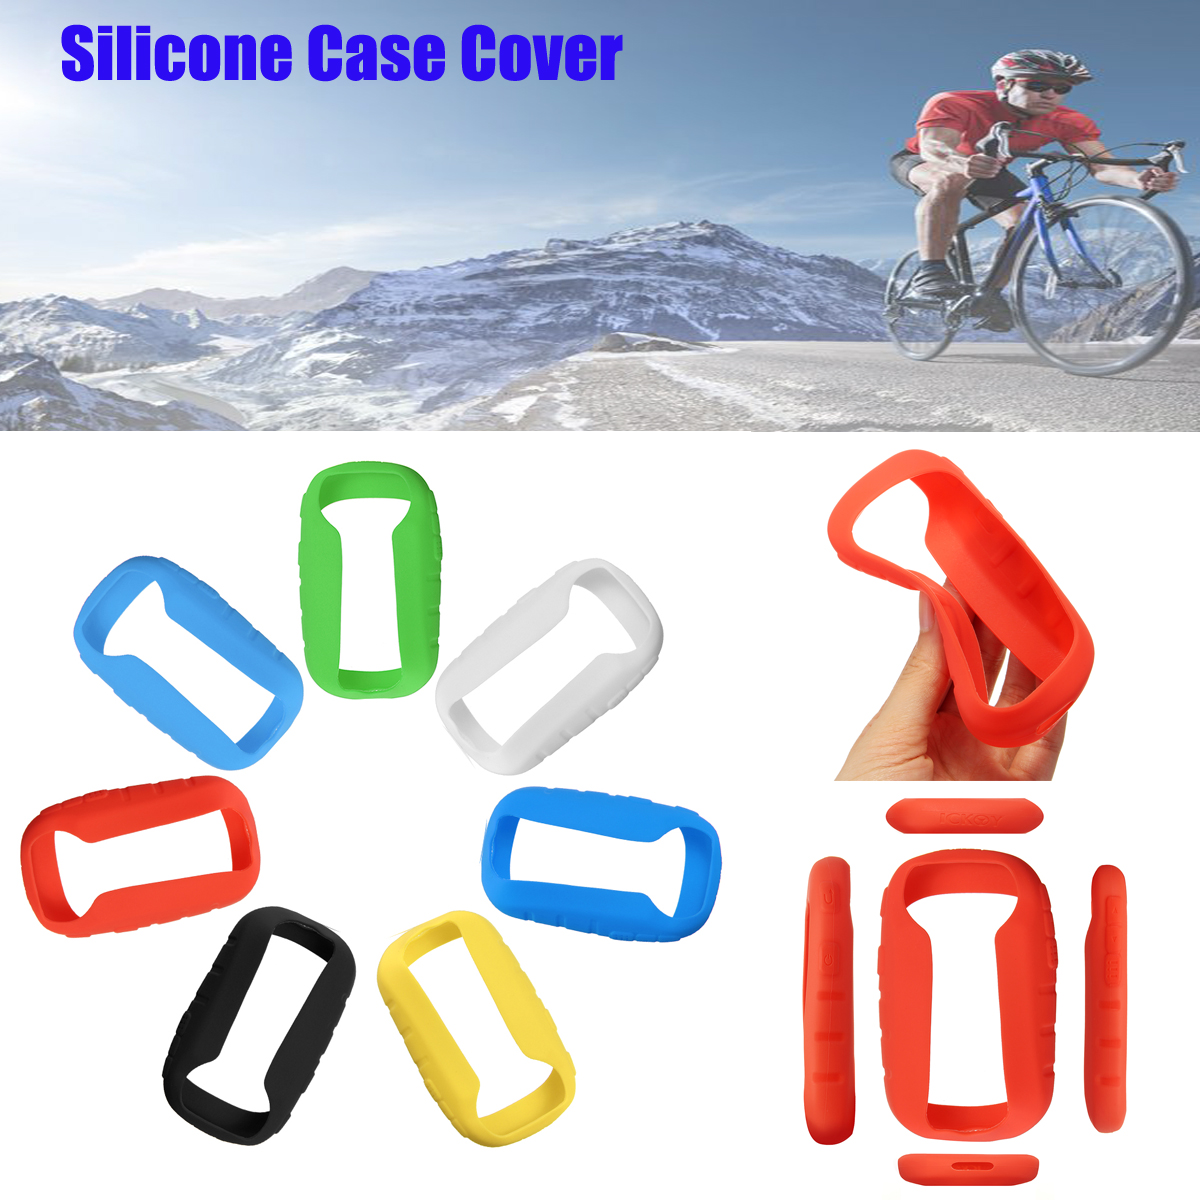 Silicone Protect Case Cover Protector for <font><b>Garmin</b></font> eTrex 10 20 30 10x 20x 30x Outdoor Hiking <font><b>Handheld</b></font> <font><b>GPS</b></font> Navigator Accessories image